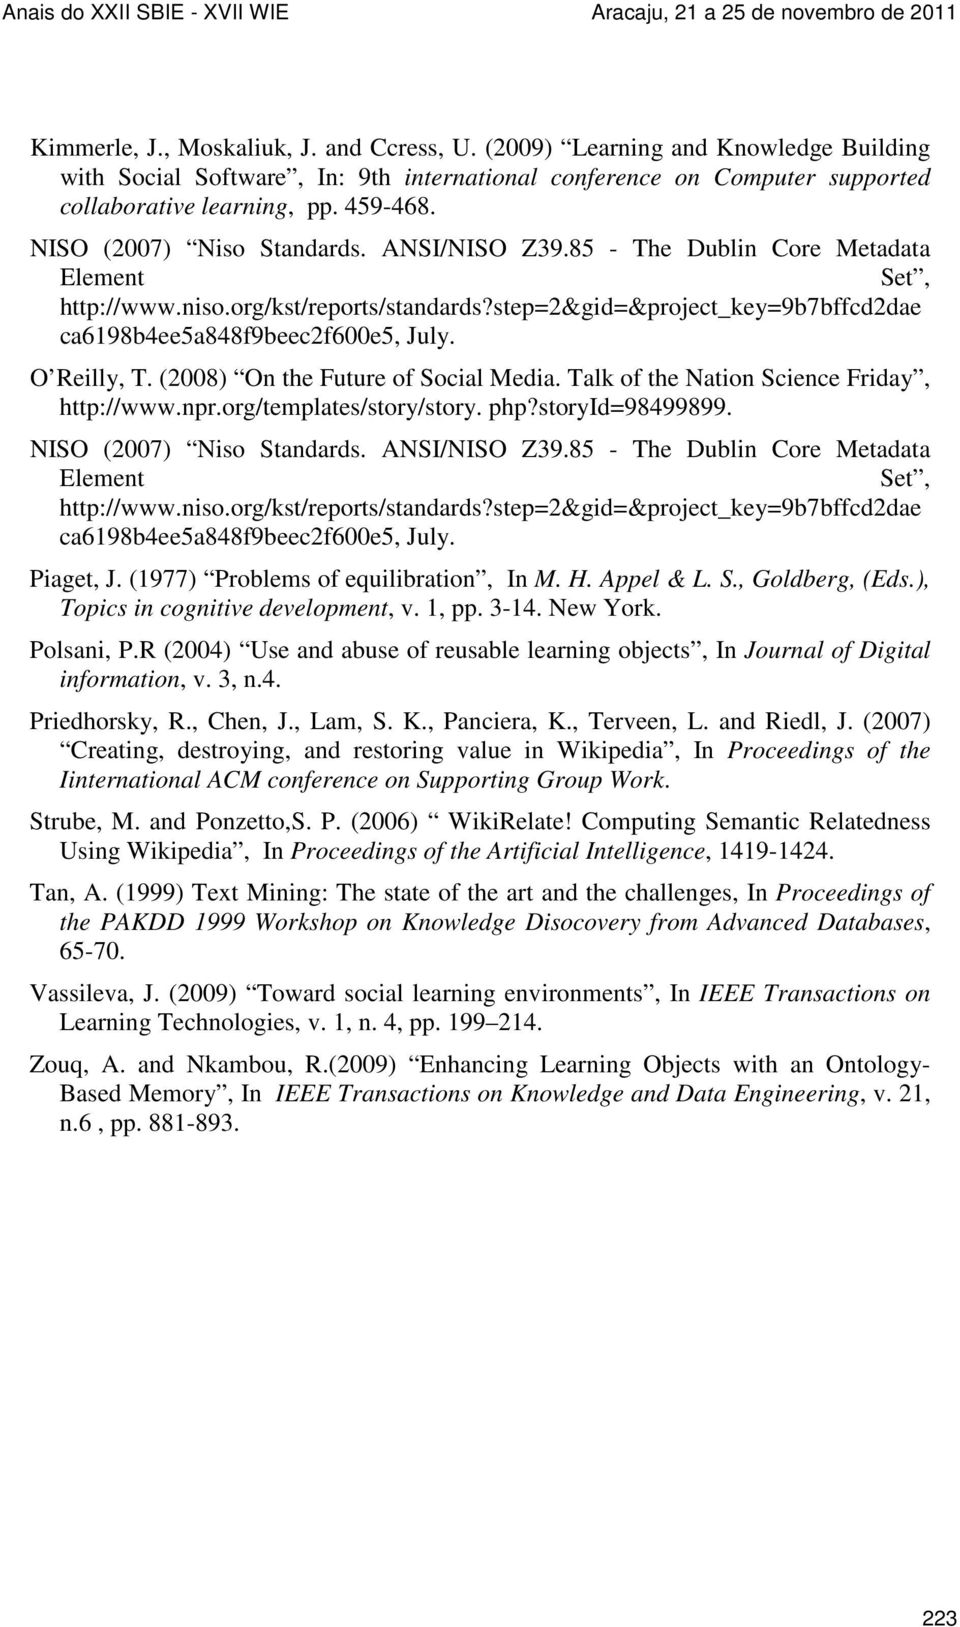 O Reilly, T. (2008) On the Future of Social Media. Talk of the Nation Science Friday, http://www.npr.org/templates/story/story. php?storyid=98499899.  Piaget, J.